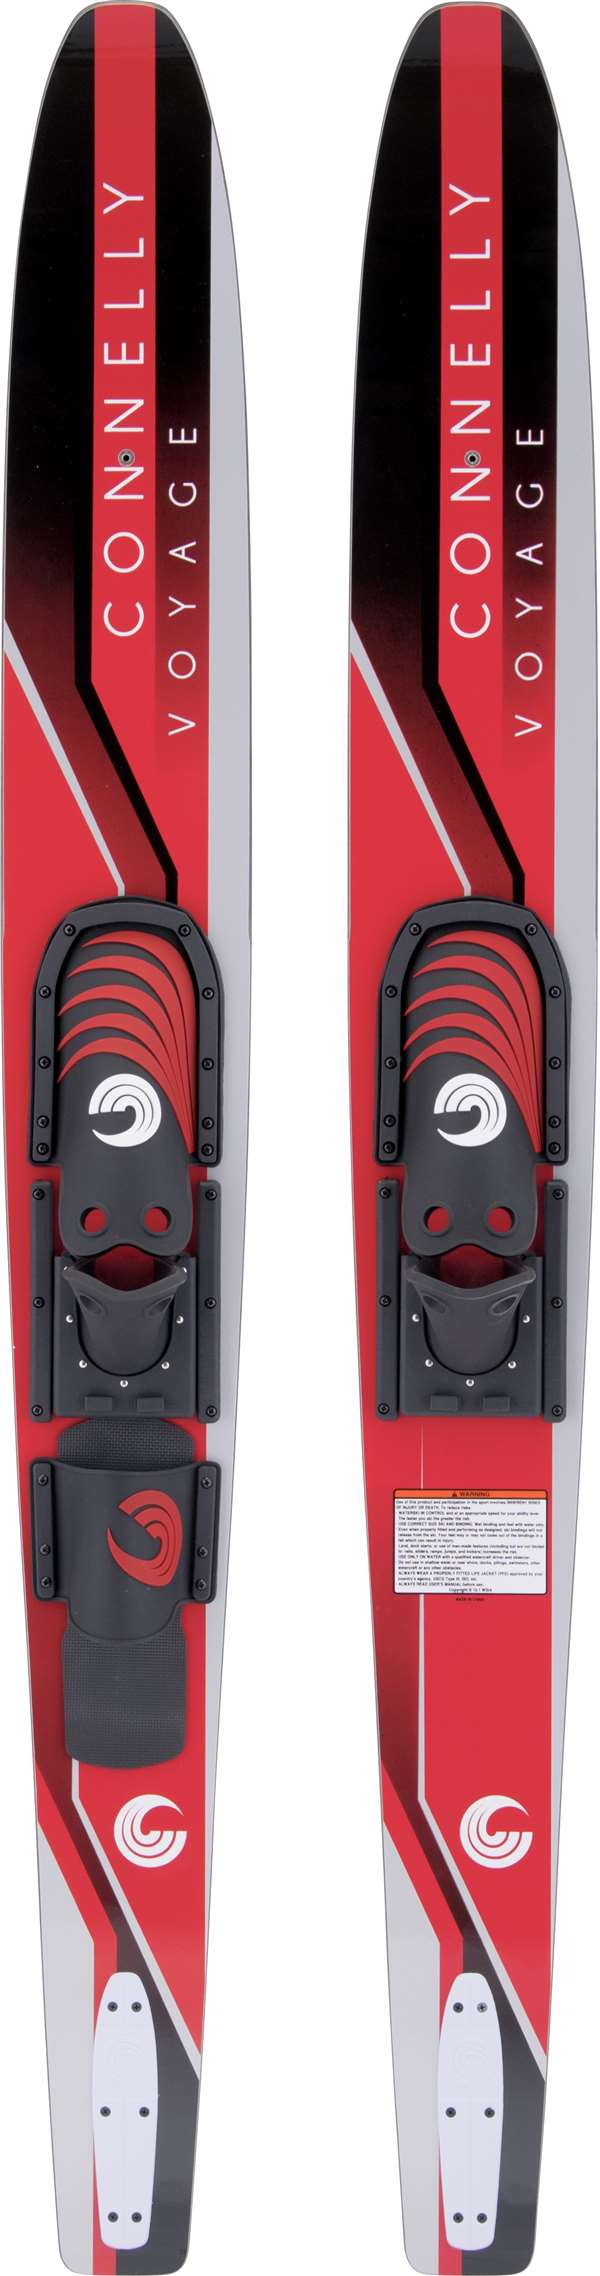 Voyage 68 Adjustable Bindings Connelly Combo Water Skis by Connelly